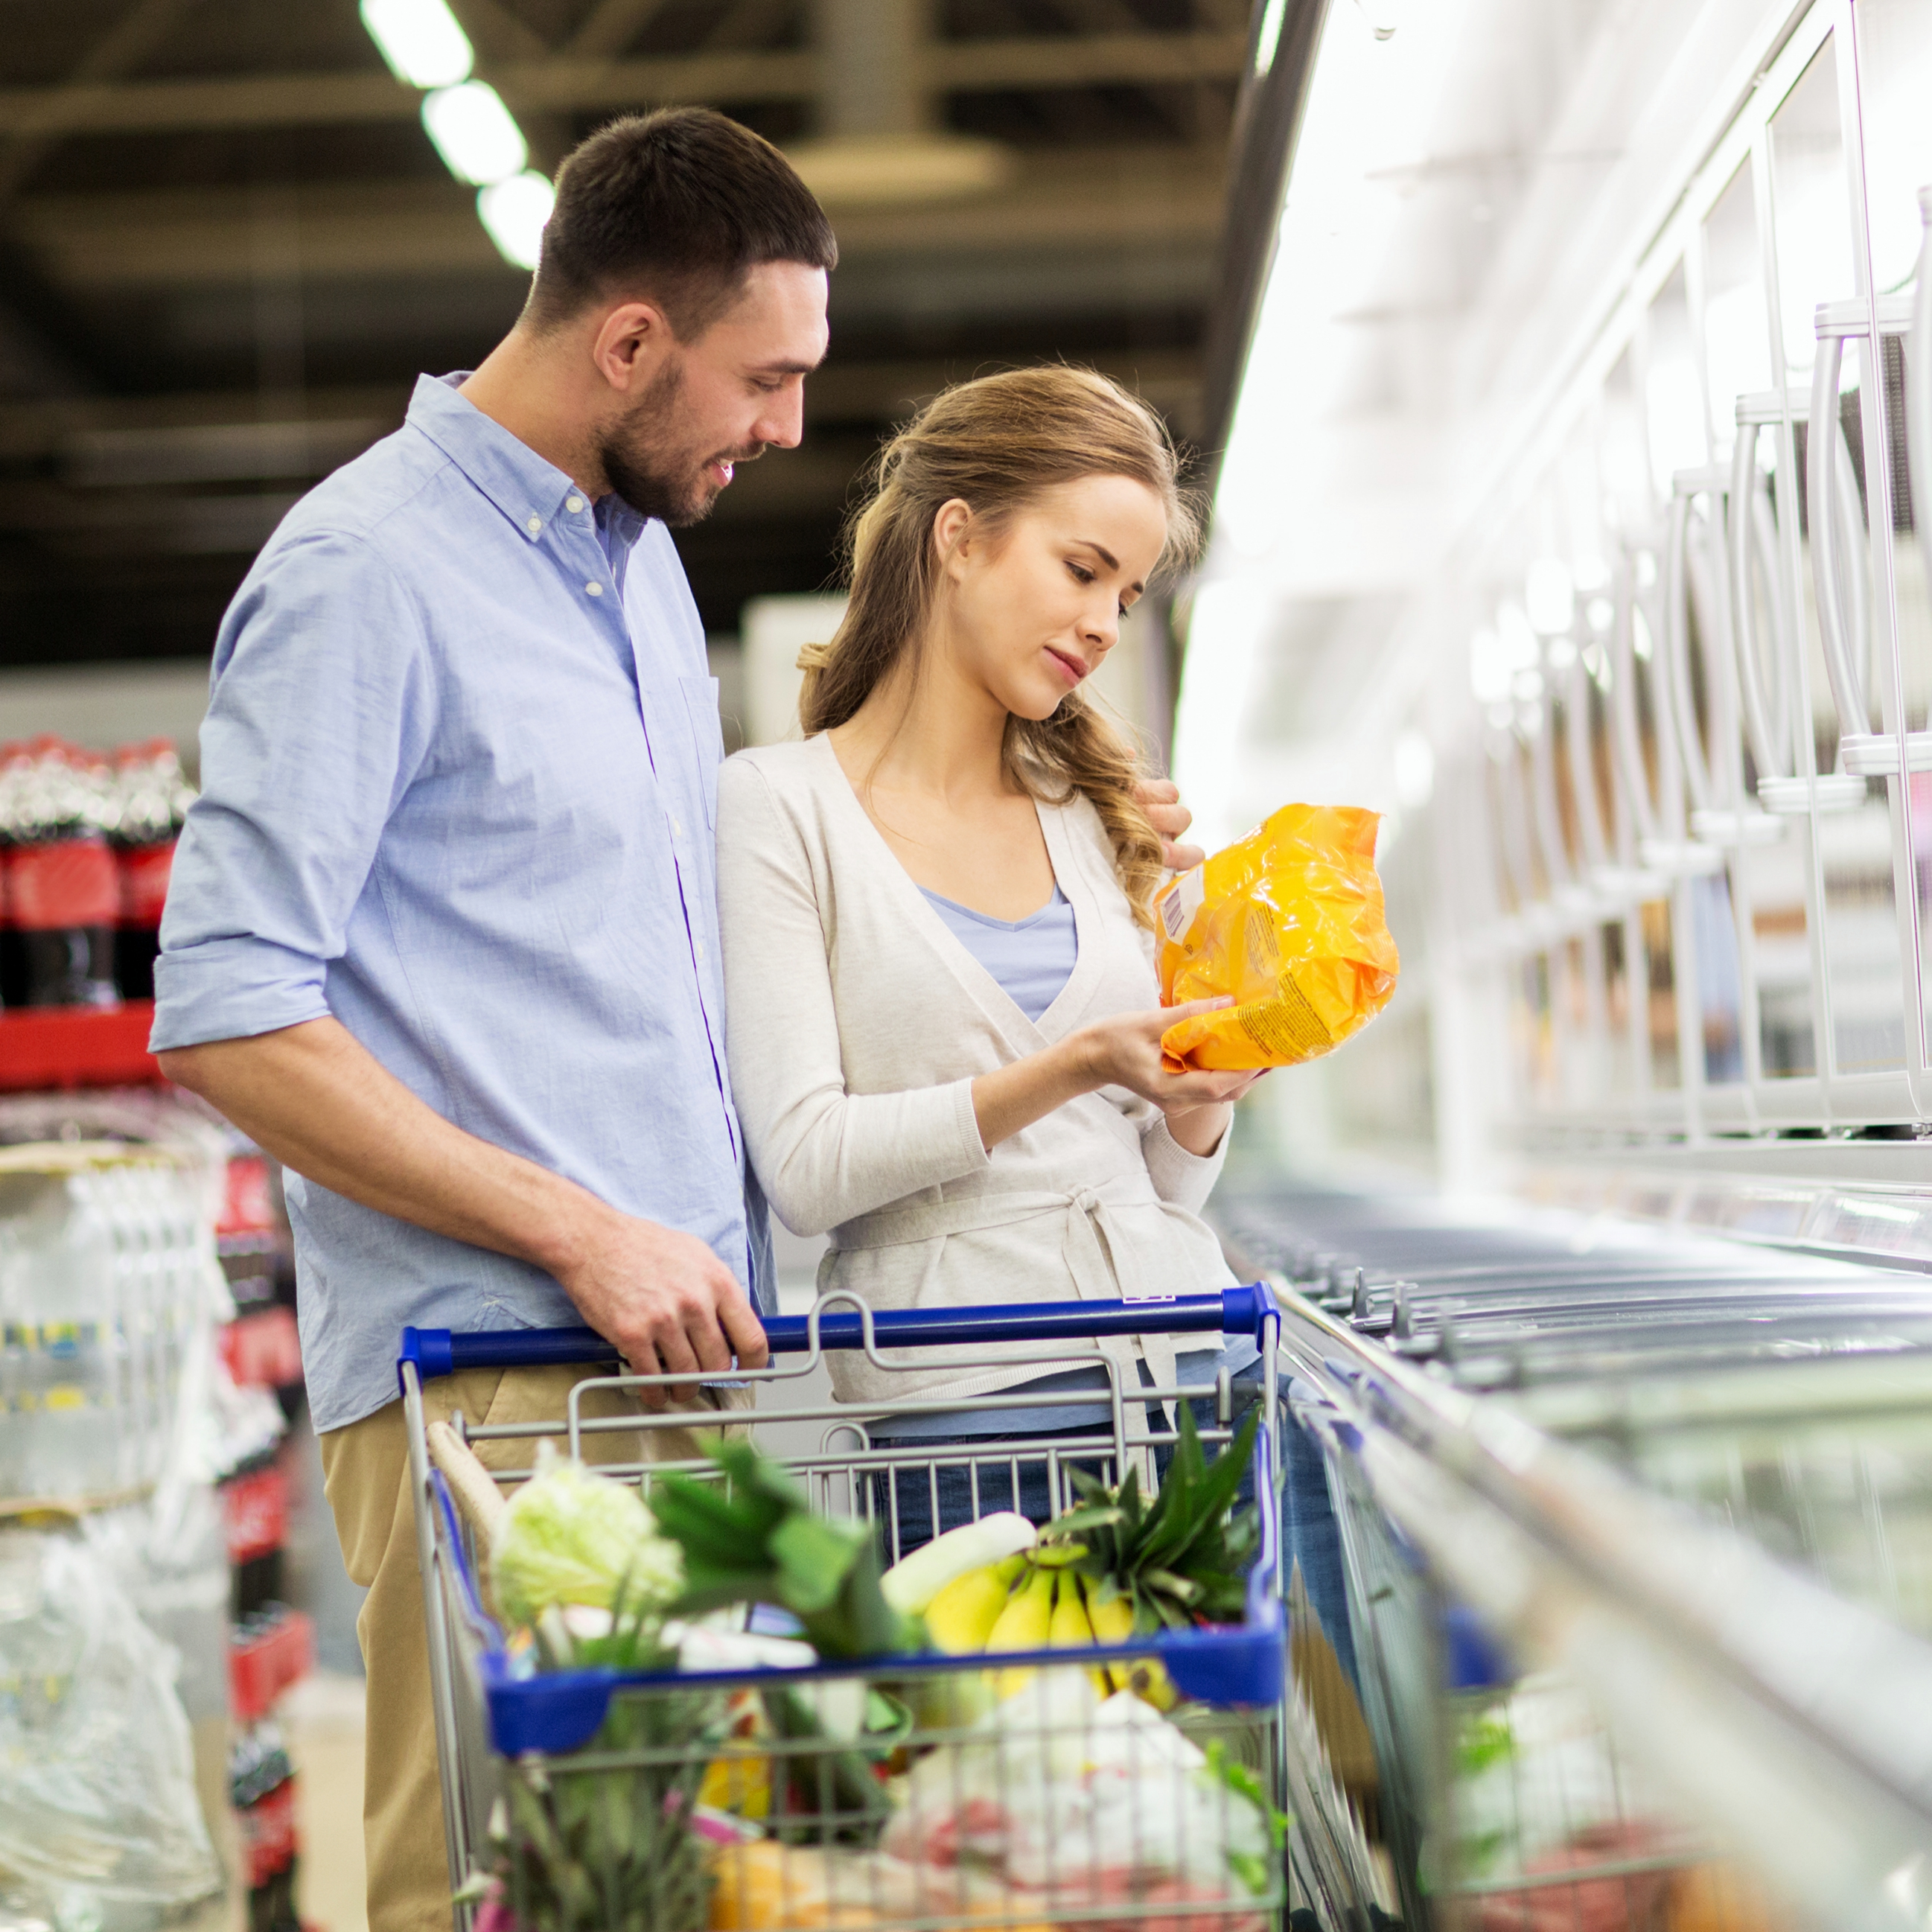 a young couple in a grocery store with a shopping cart and looking at items